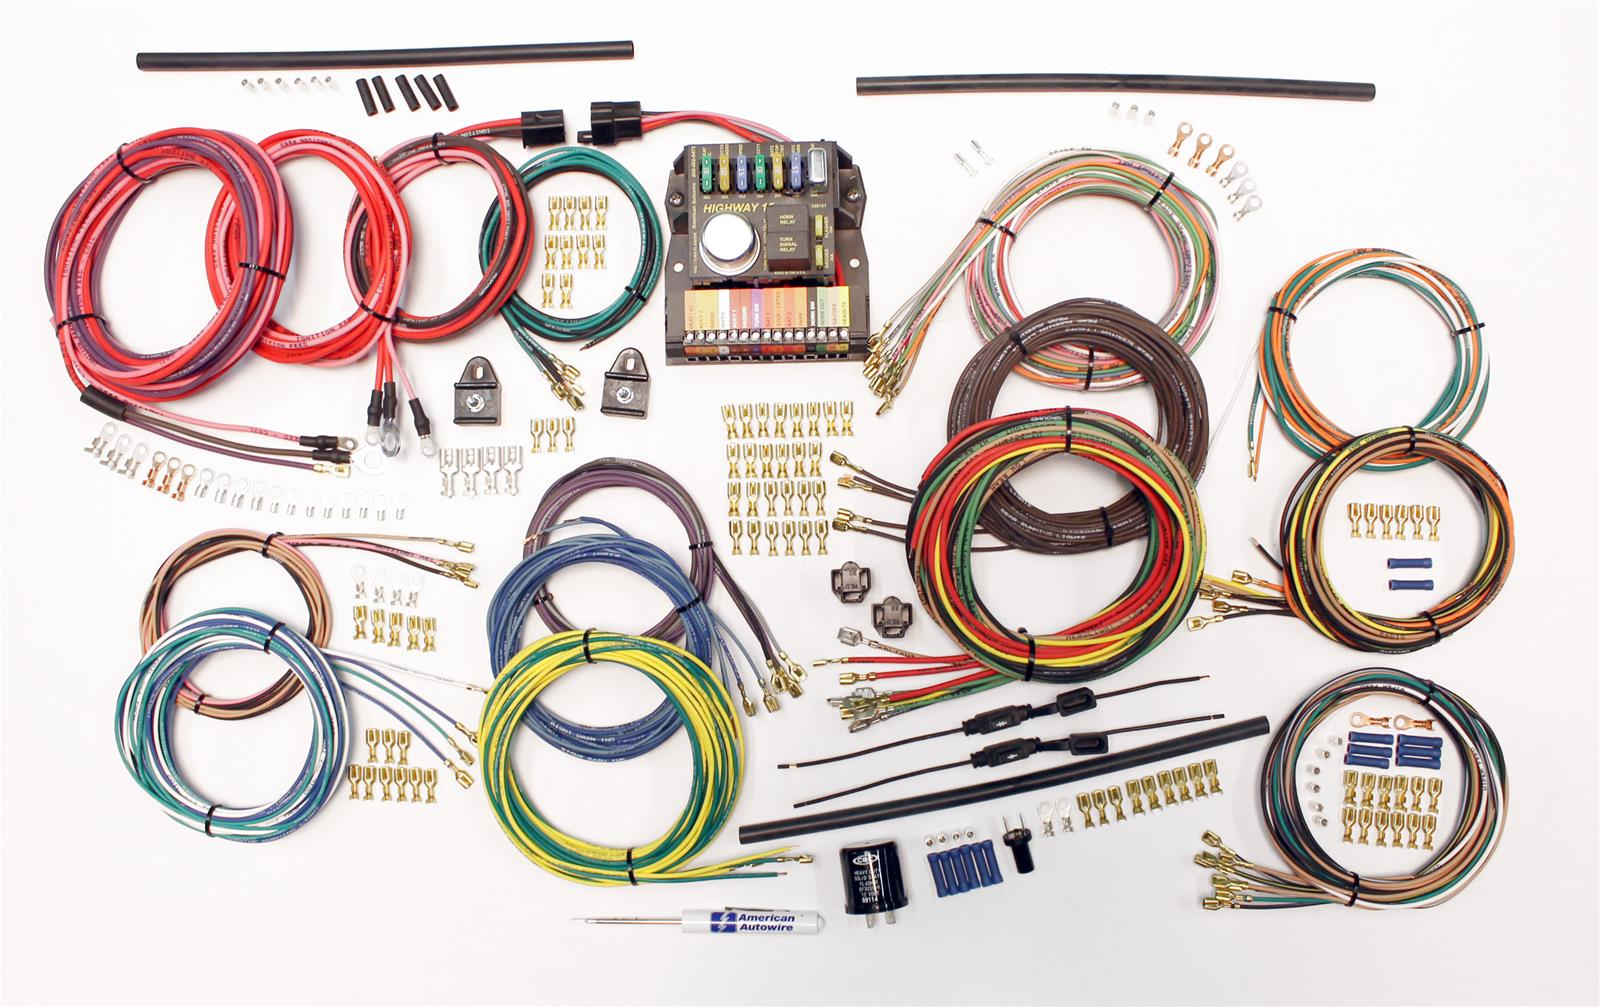 aww 510419_xl american autowire classic update series wiring harness kits 510419 74 VW Beetle Wiring Diagram at crackthecode.co